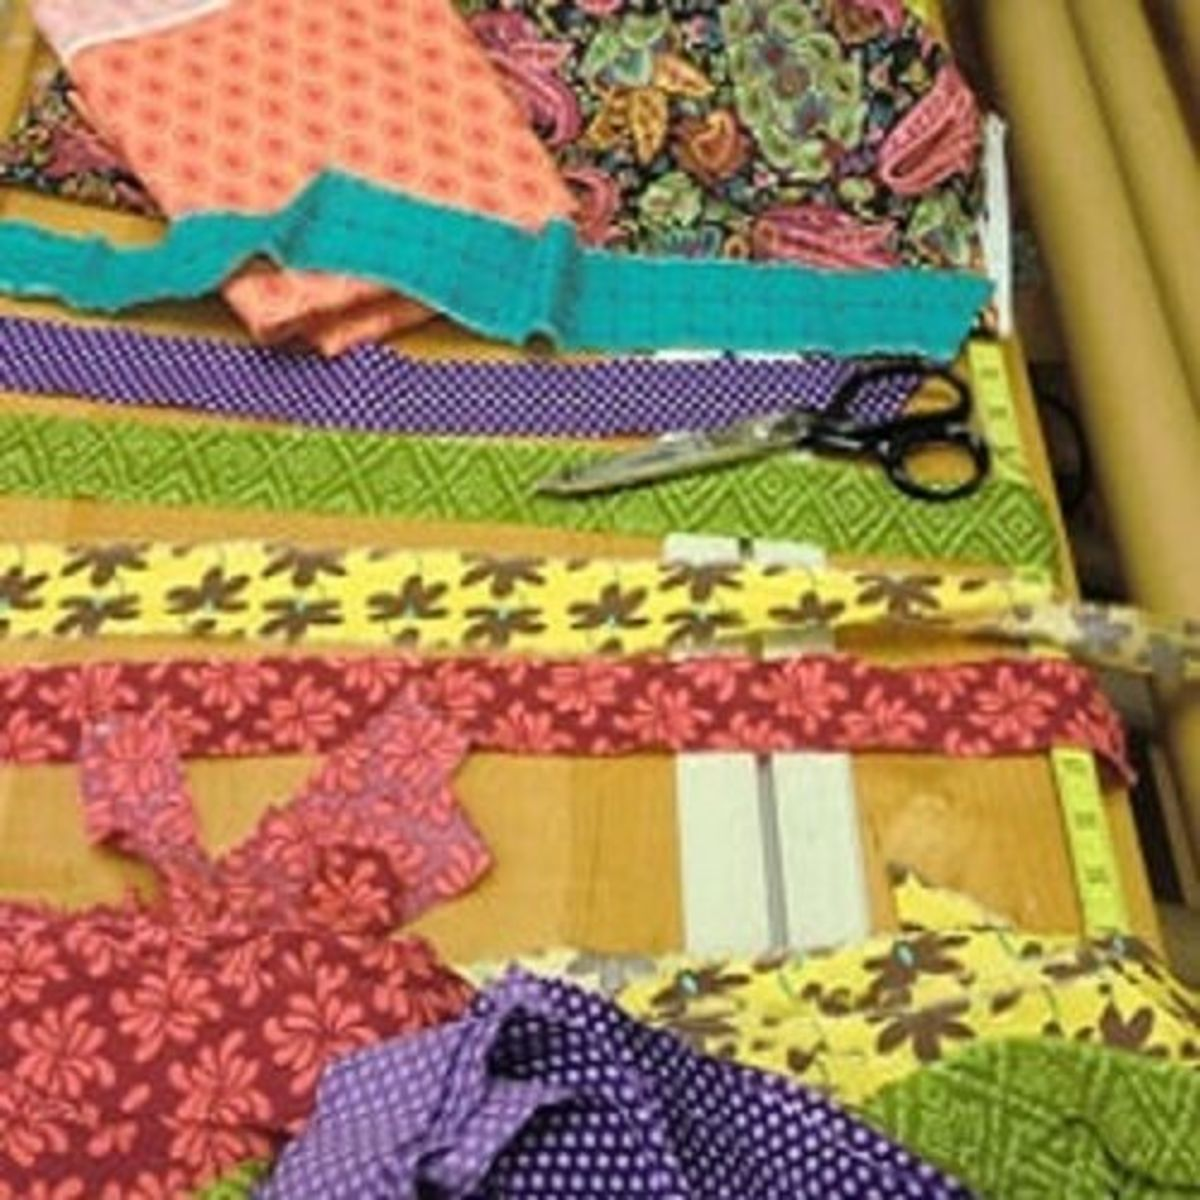 Supplies Needed:  1. 5-7 yards of assorted craft/quilting fabrics (Note: some less expensive fabrics do not tear straight)  2. Curtain backing, if desired, such as pre-made sheers, burlap panels, or light/heat blocking curtains  3. Sewing machi